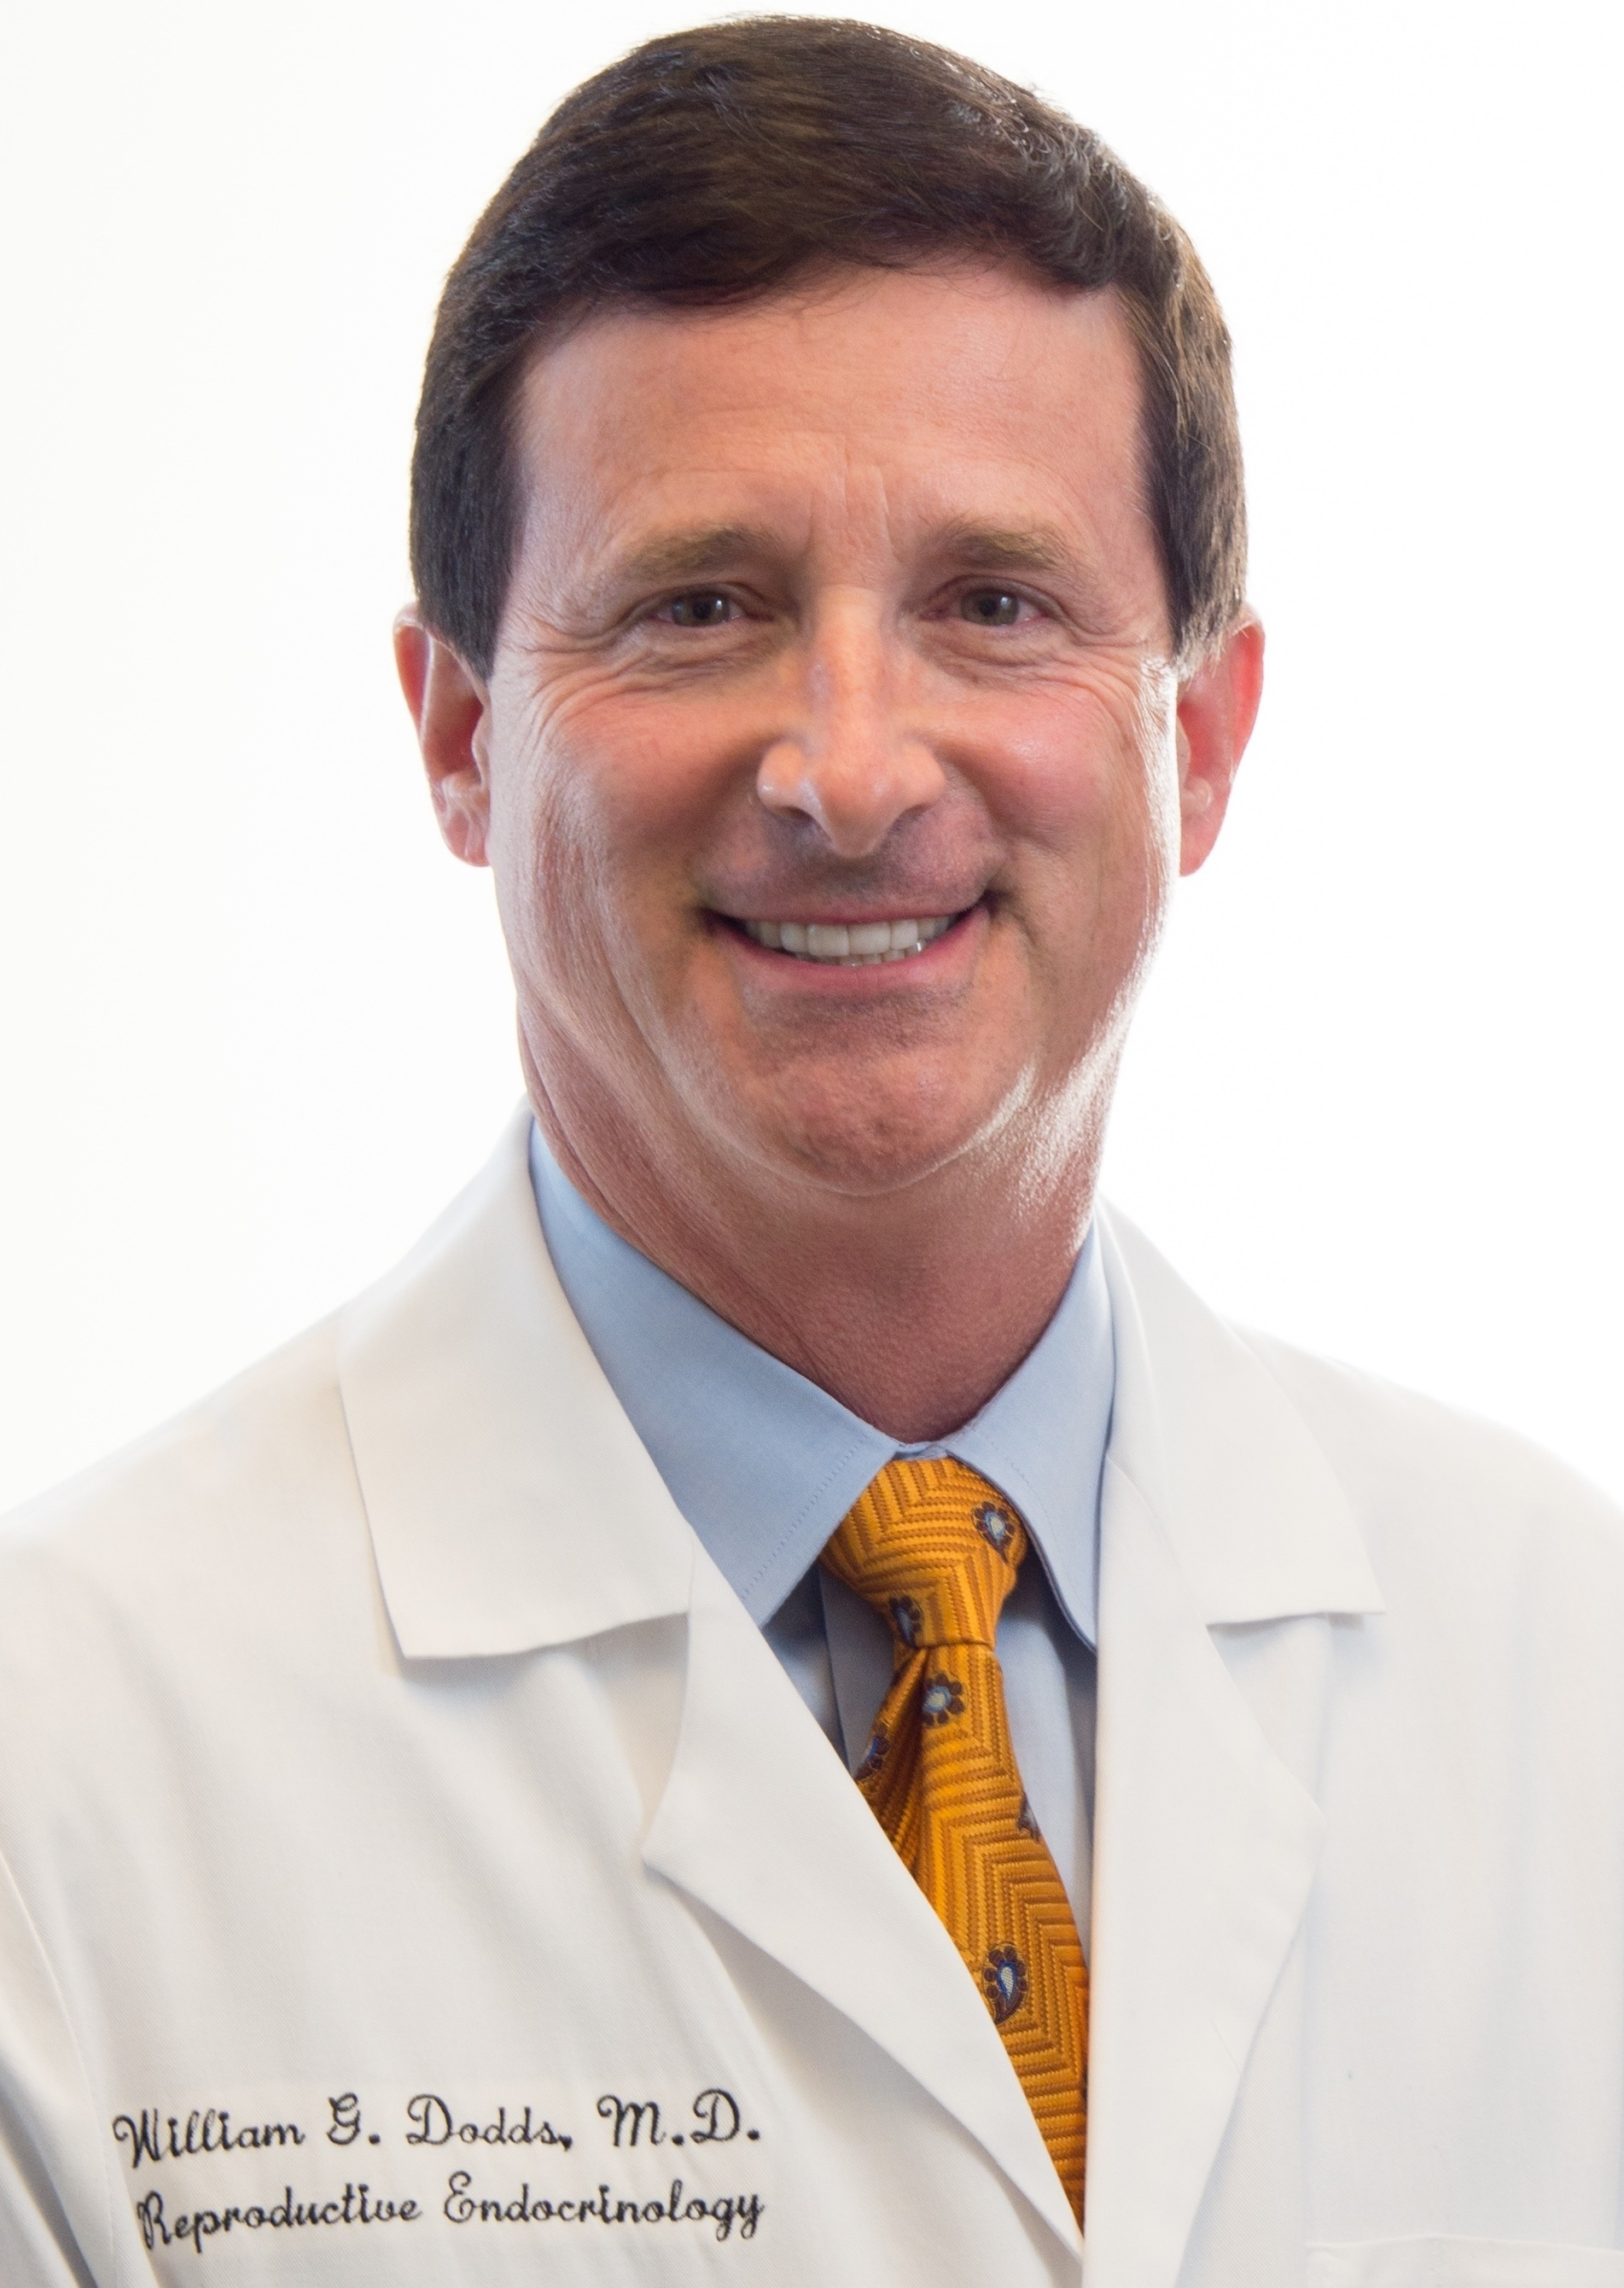 Dr. William Dodds, MD